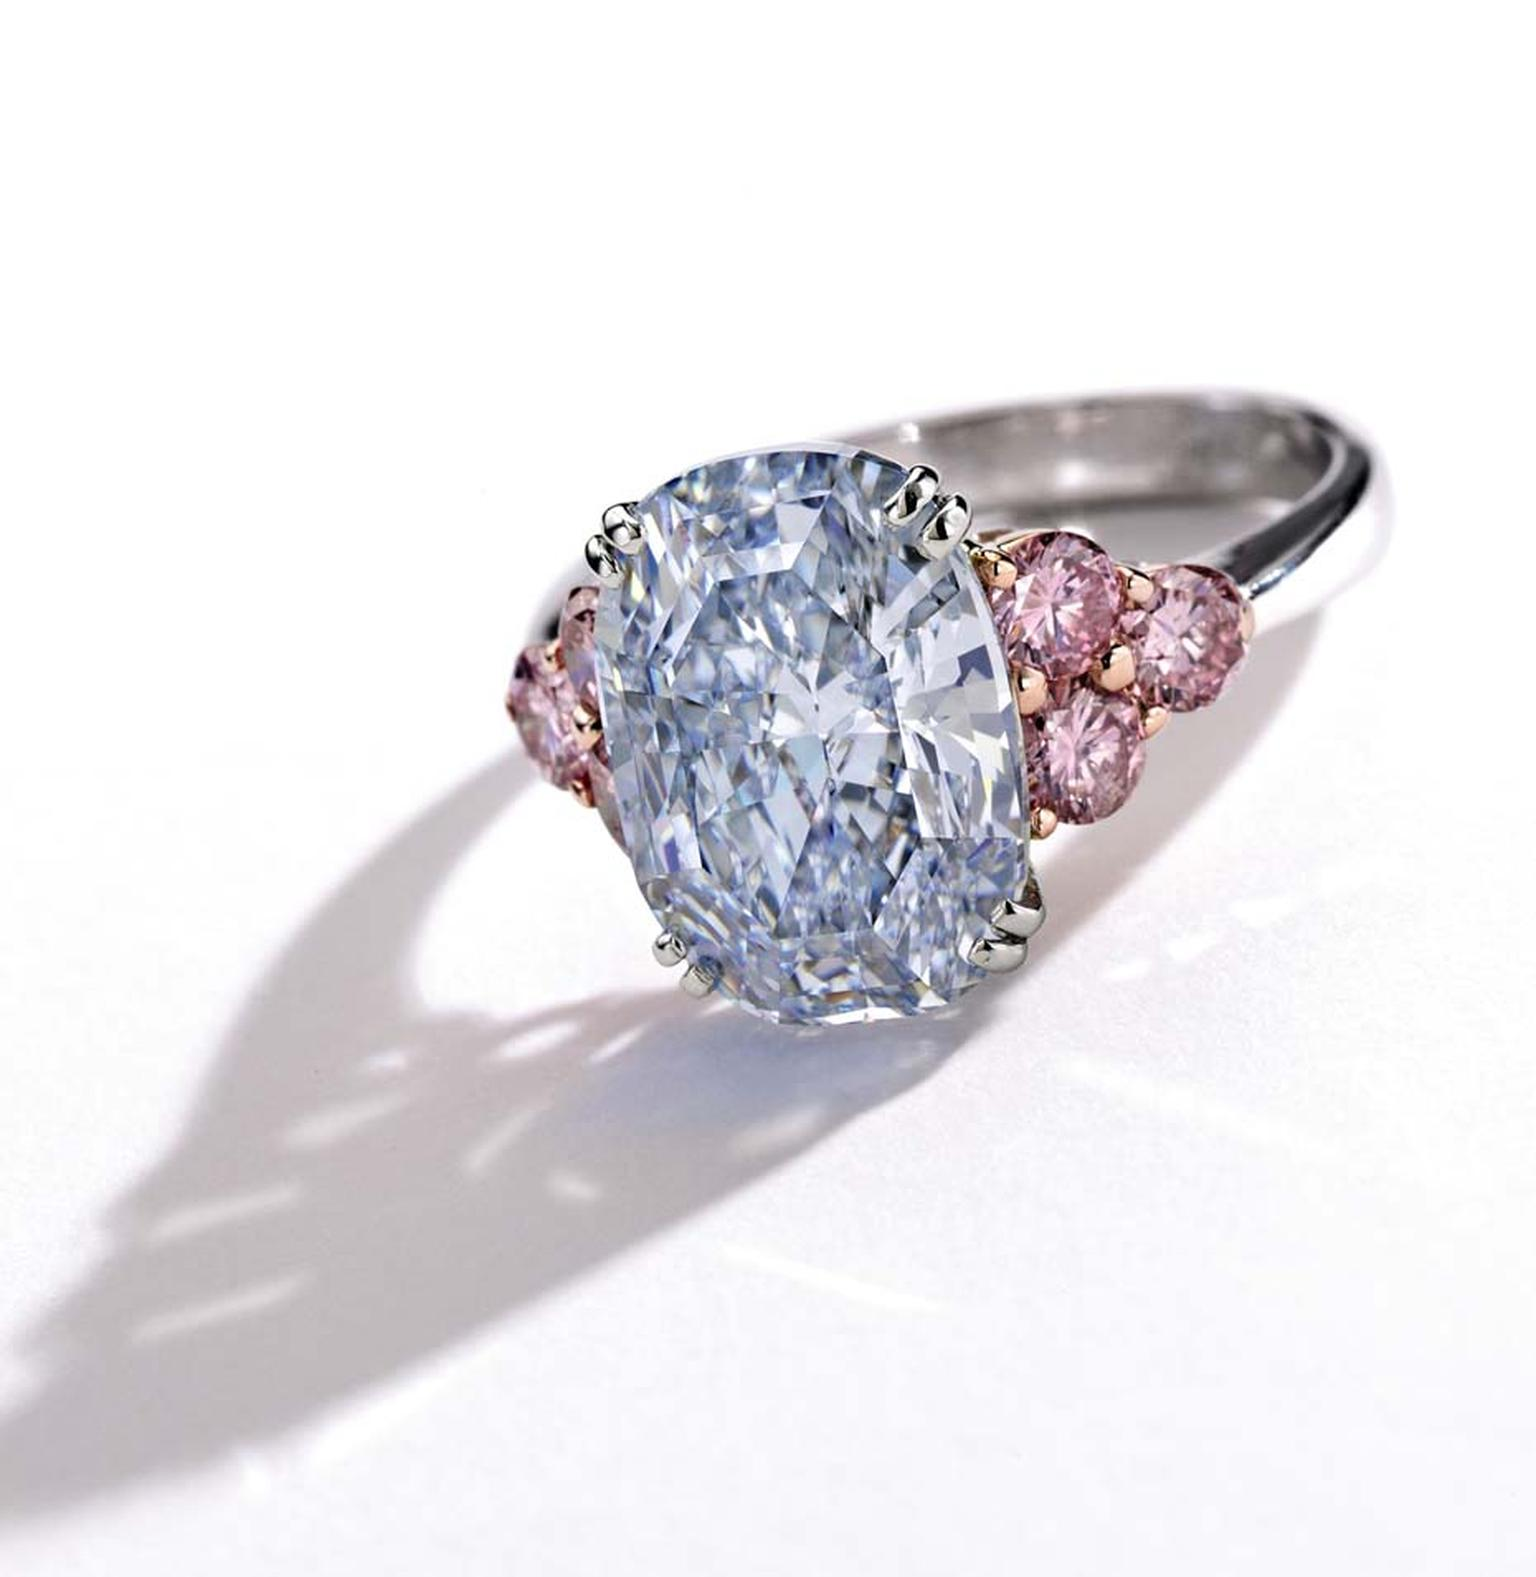 The Monarch Blue diamond ring, set in platinum and rose gold with an oval-shaped Fancy blue mixed-cut 6.06ct diamond, complemented by six pink-hued round diamonds, has an estimate of $3.5-4.5 million.